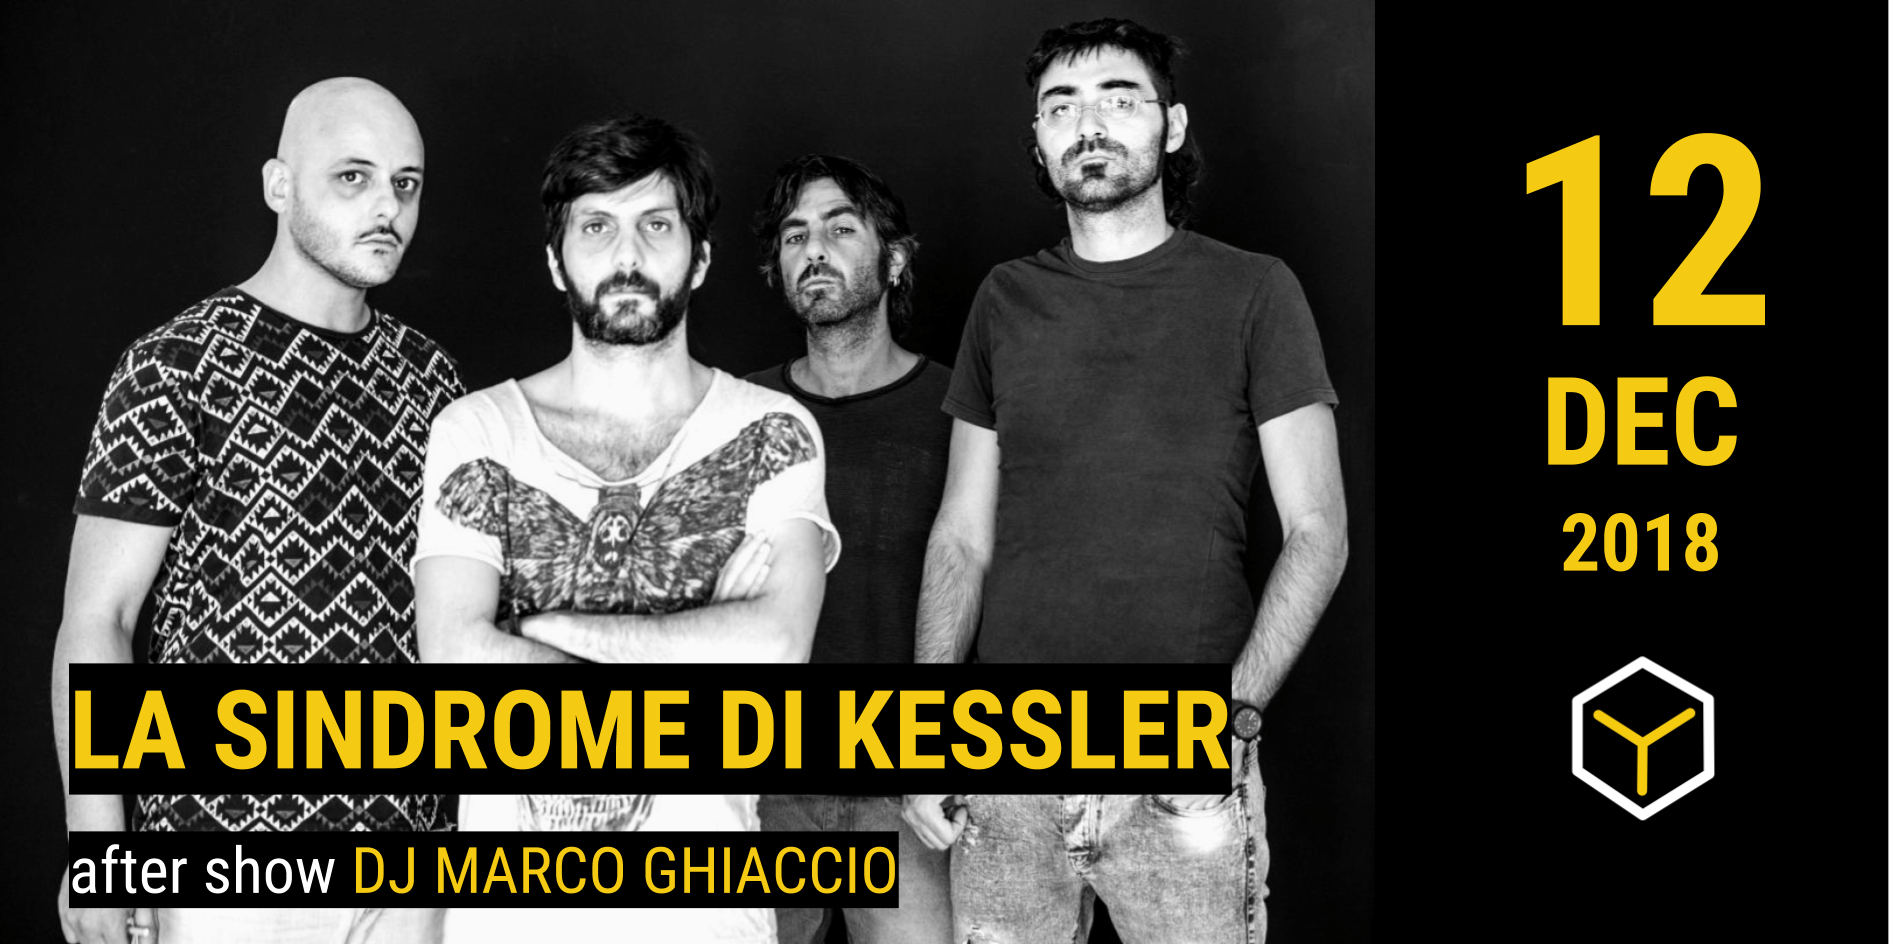 La Sindrome di Kessler - The Yellow Bar